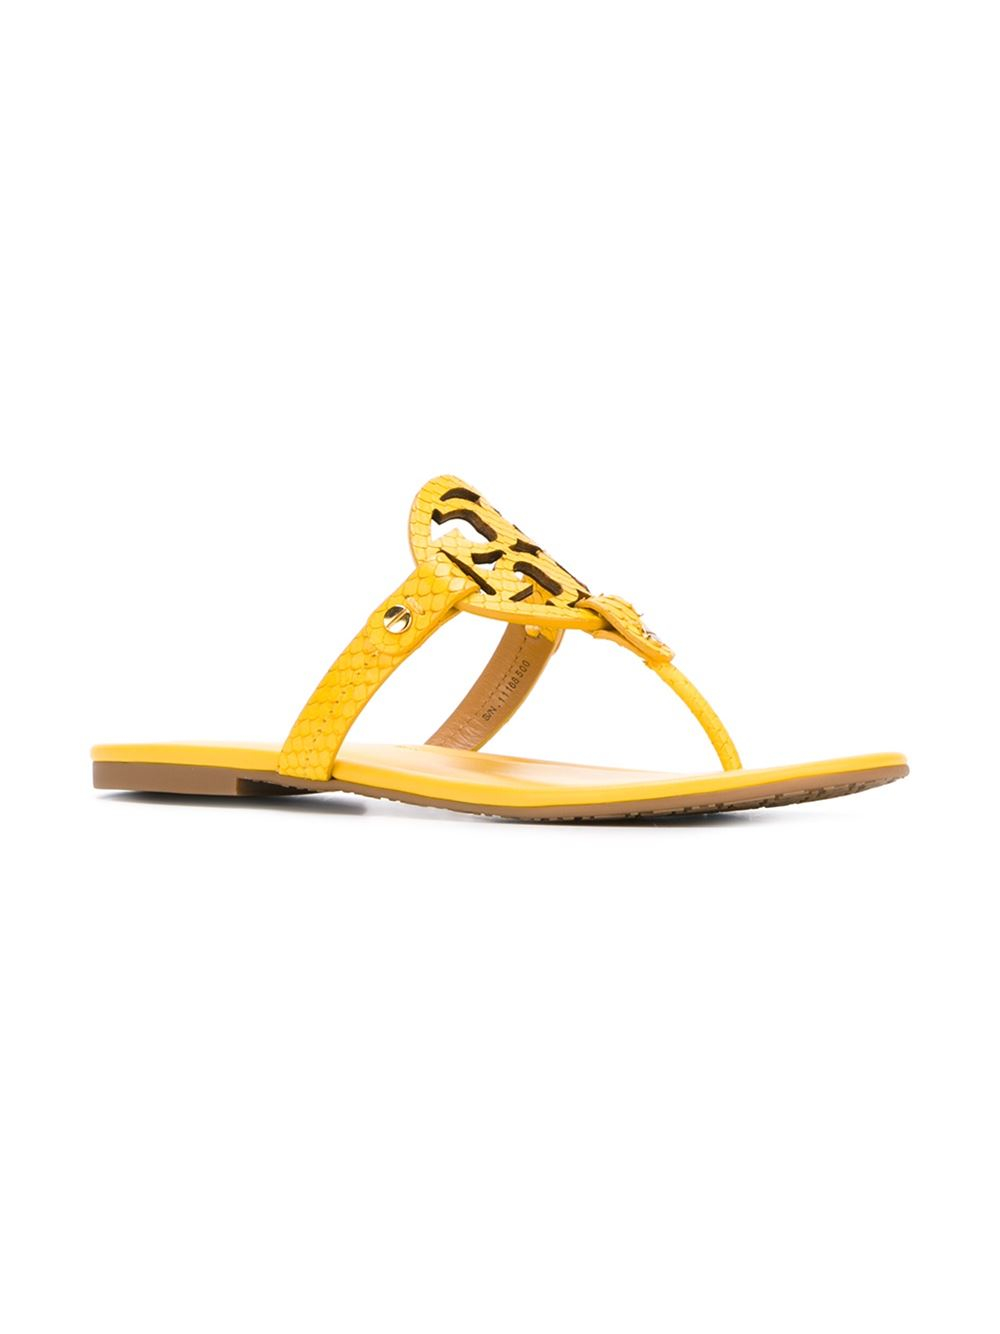 Lyst Tory Burch Miller Thong Sandals In Yellow